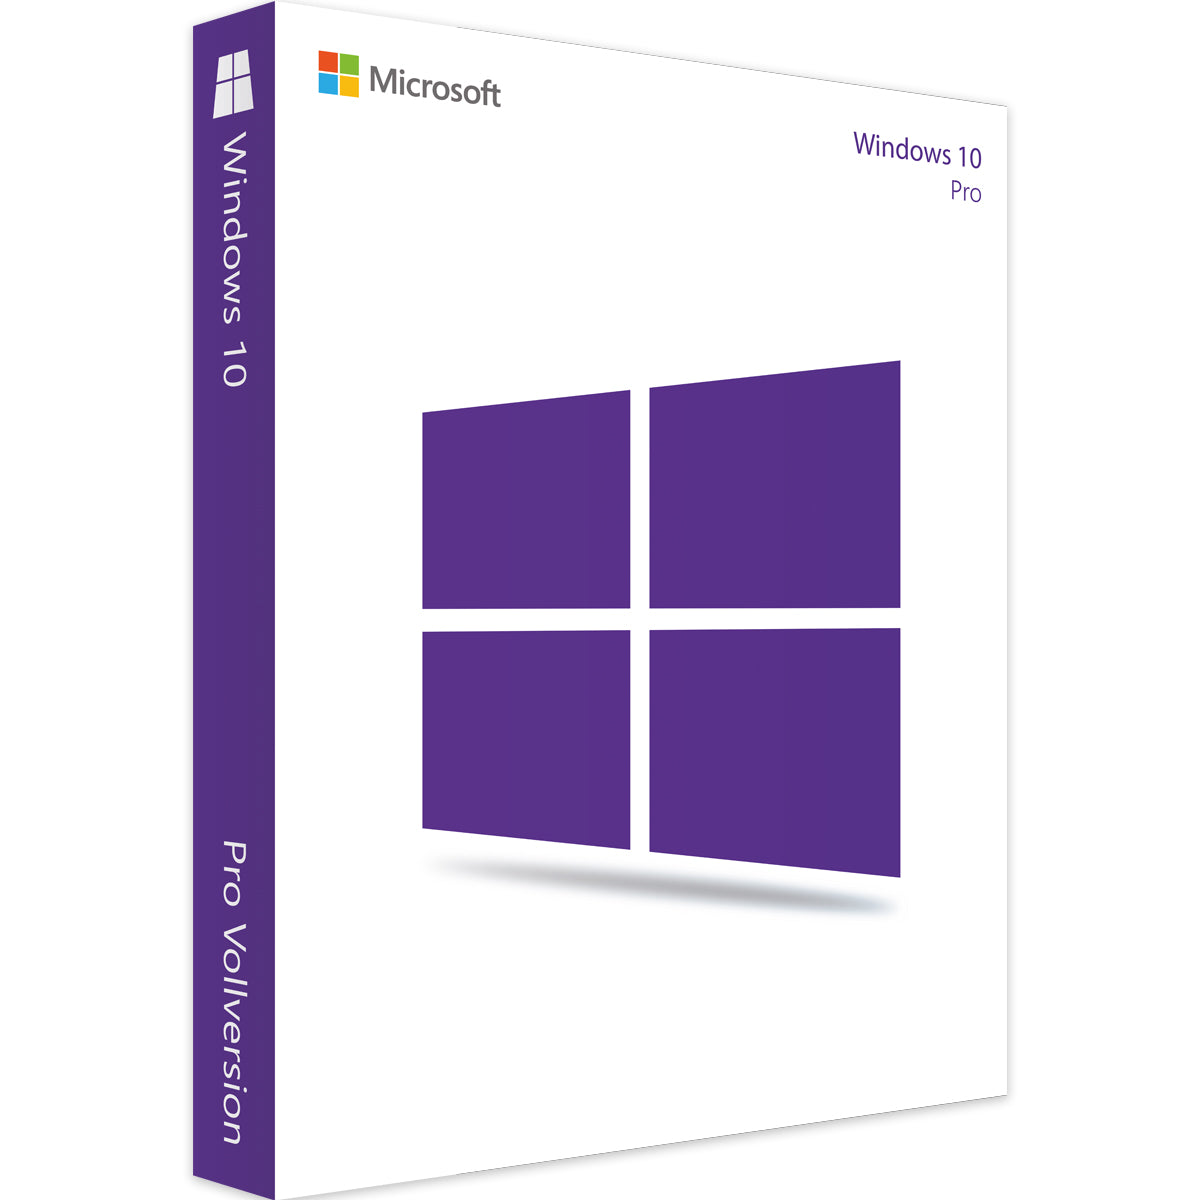 Microsoft Windows 10 Professional - Software-Markt data-zoom=